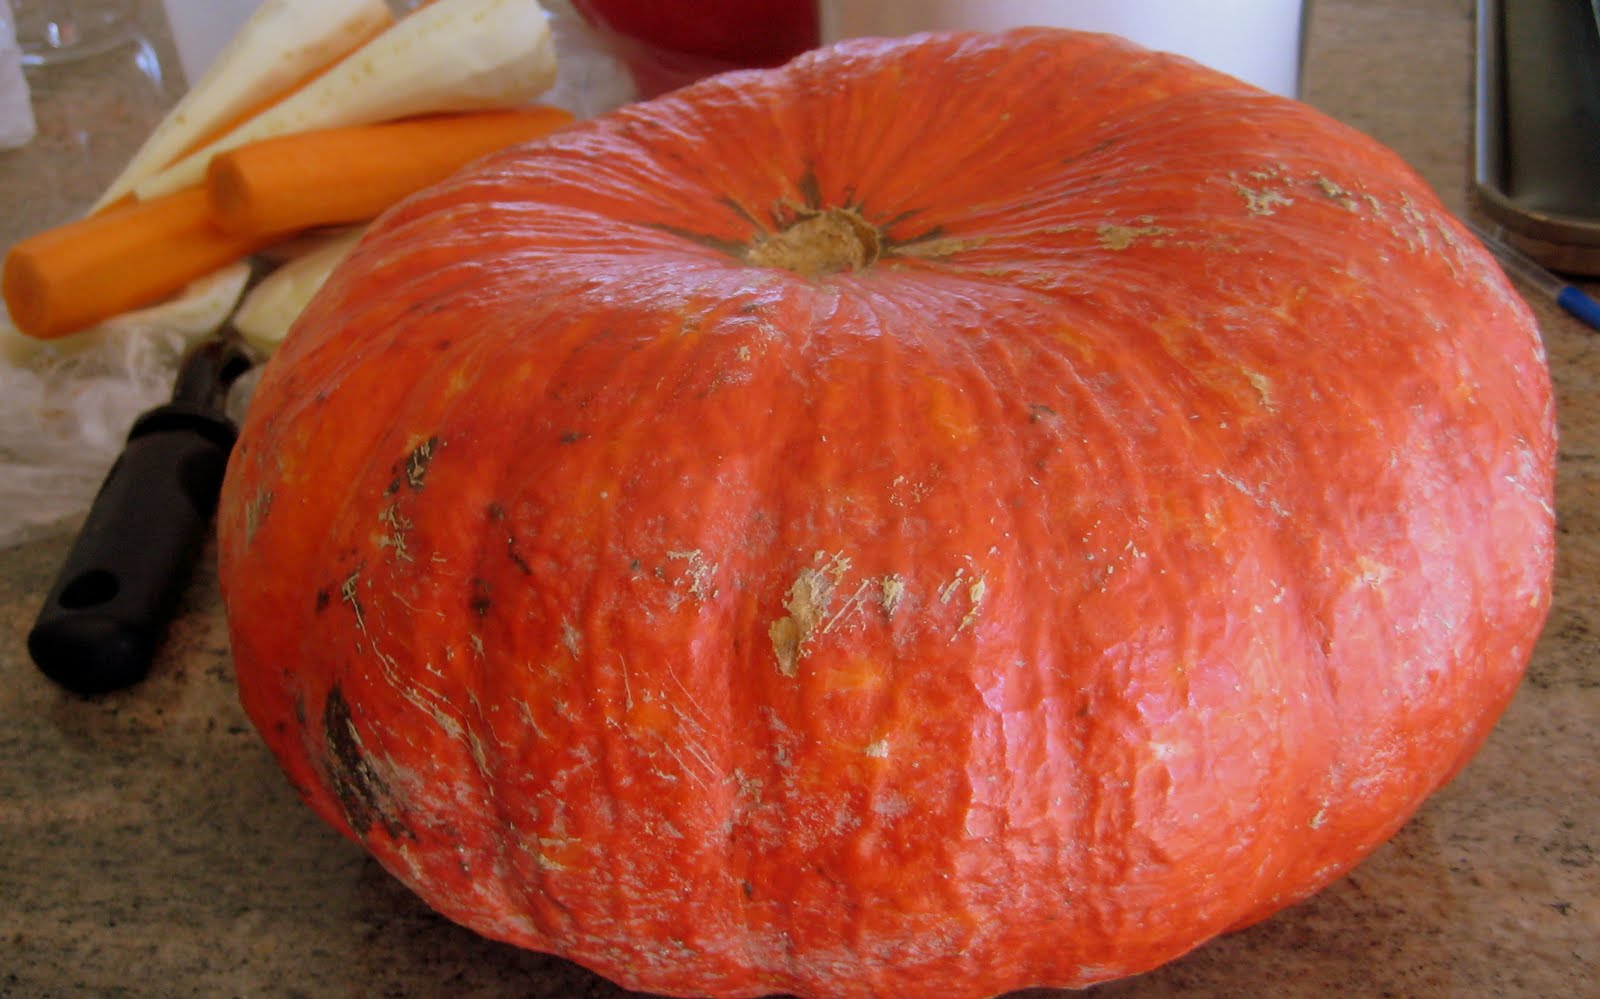 for a pumpkin that was a sweet flavourful eating pumpkin